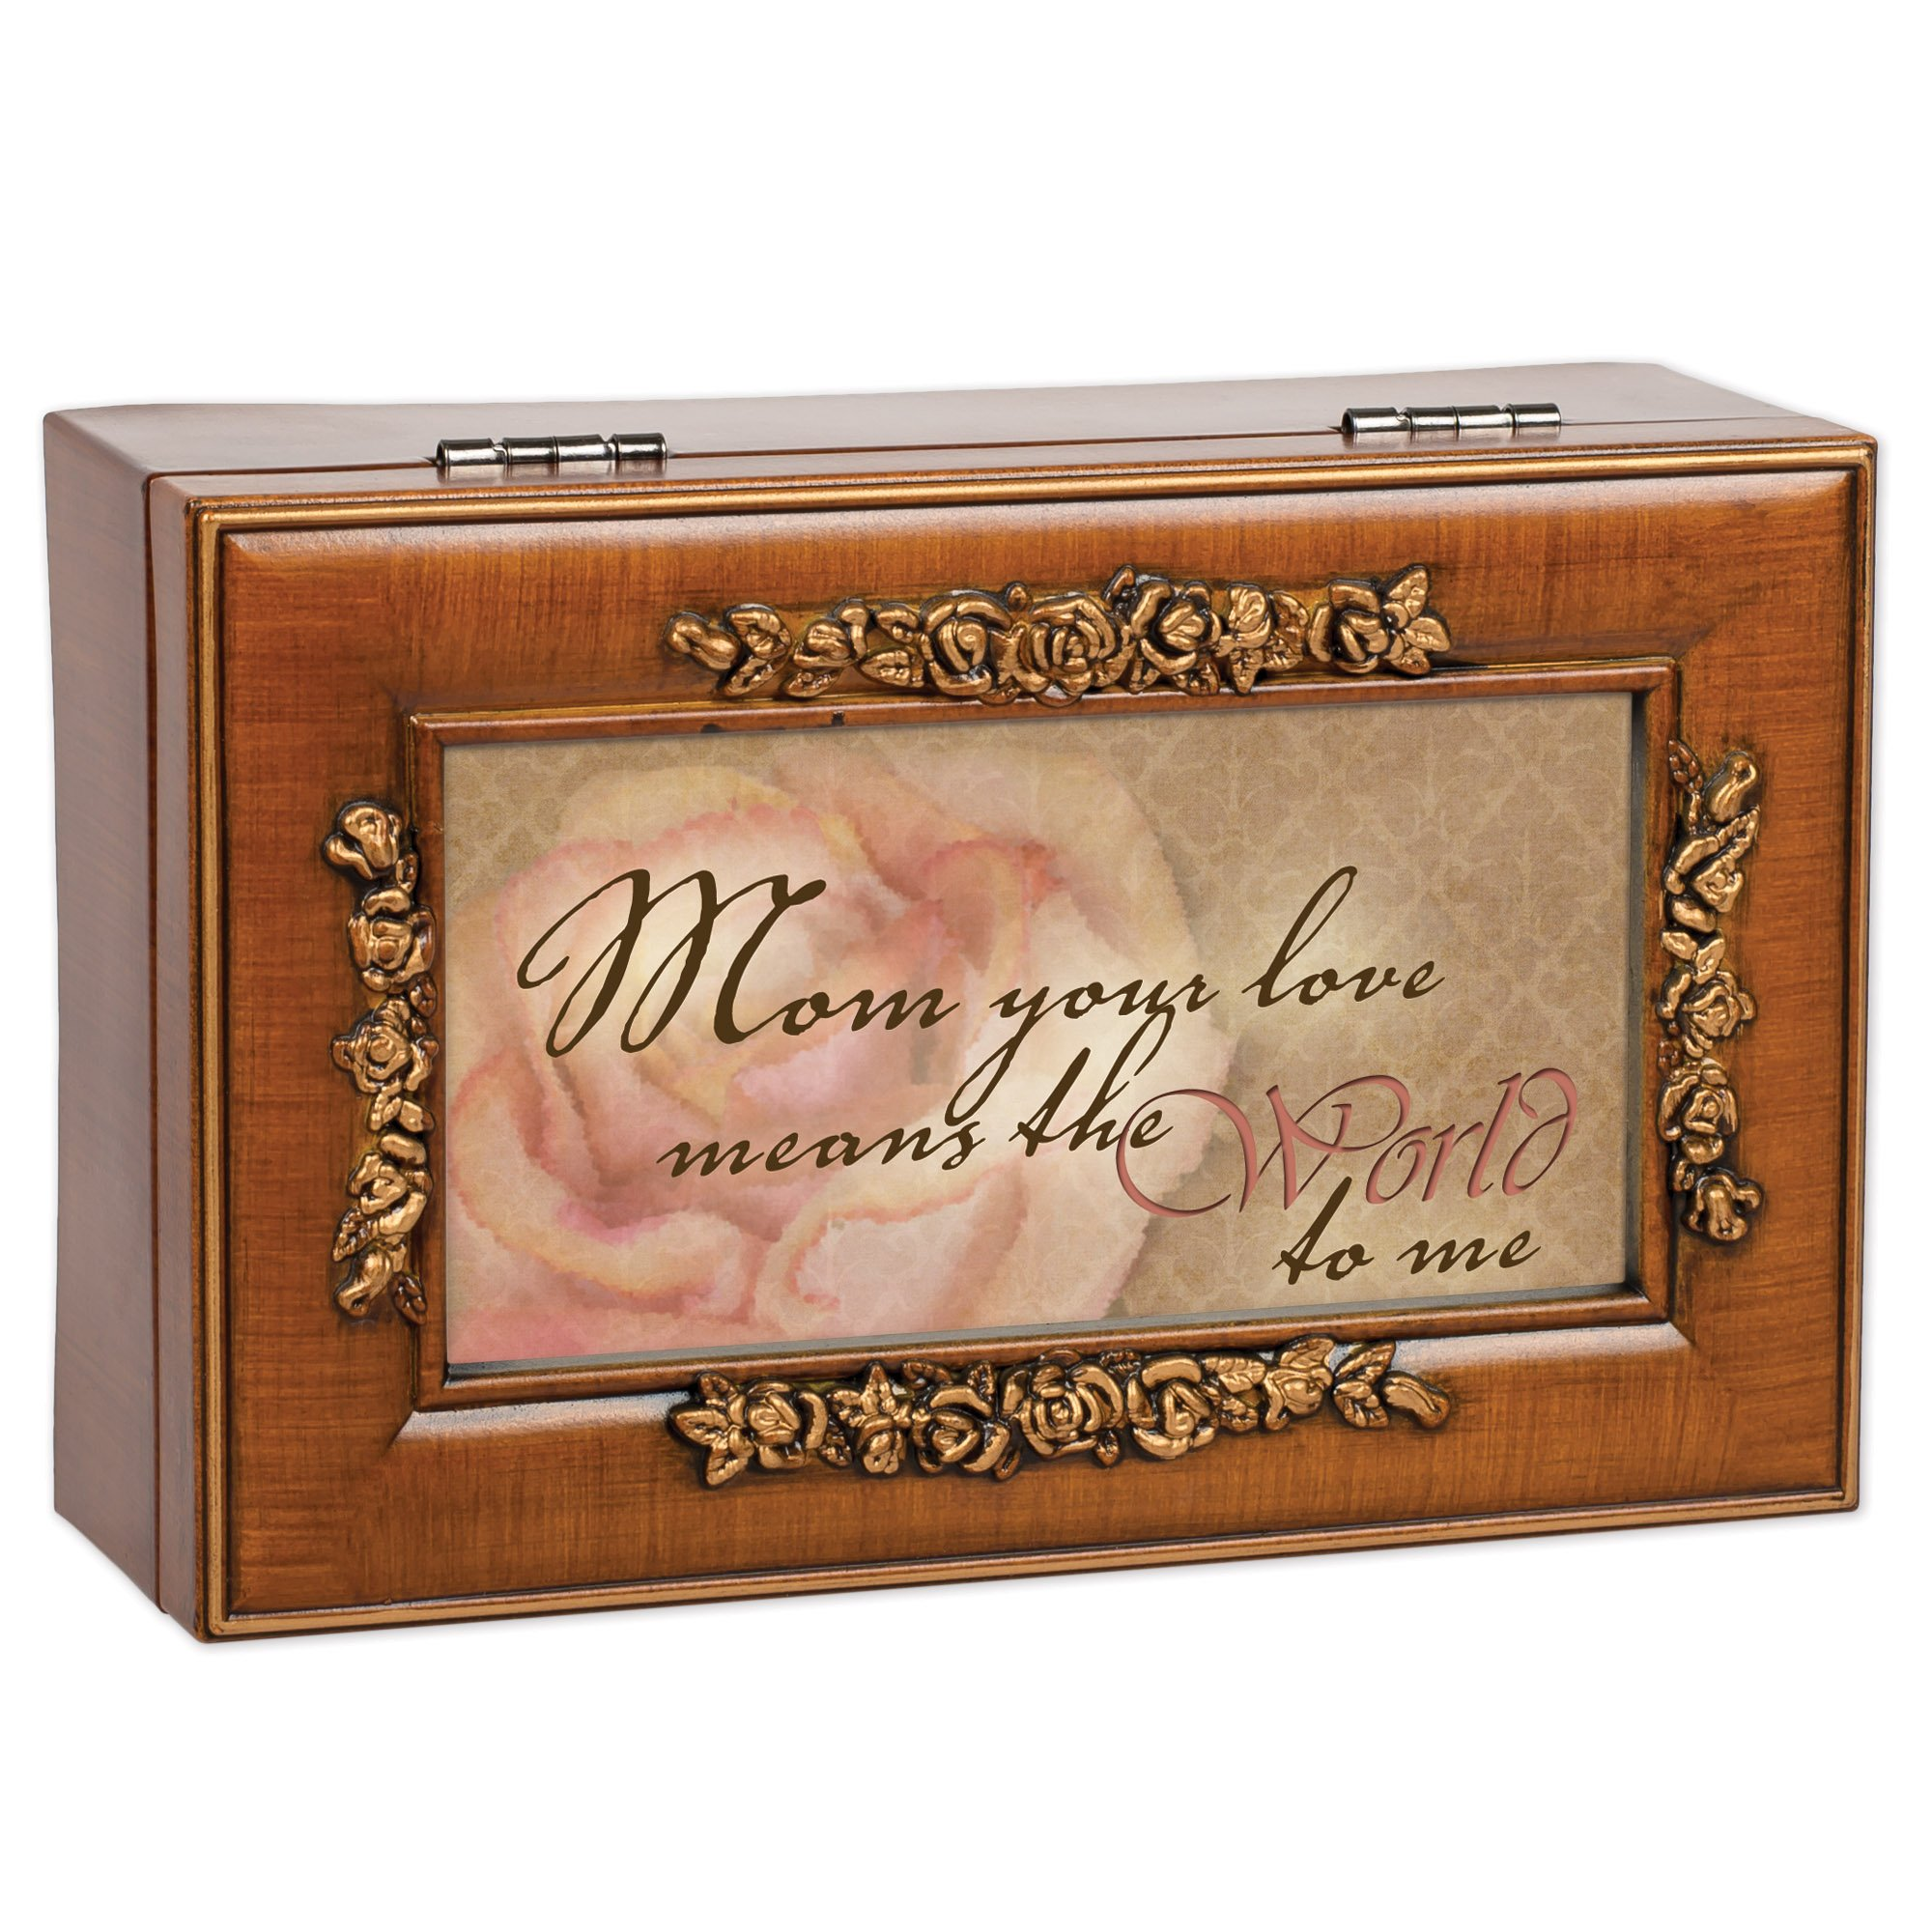 Mom Your Love Wood Finish Rose Jewelry Music Box - Plays Tune Wind Beneath My Wings by Cottage Garden (Image #2)